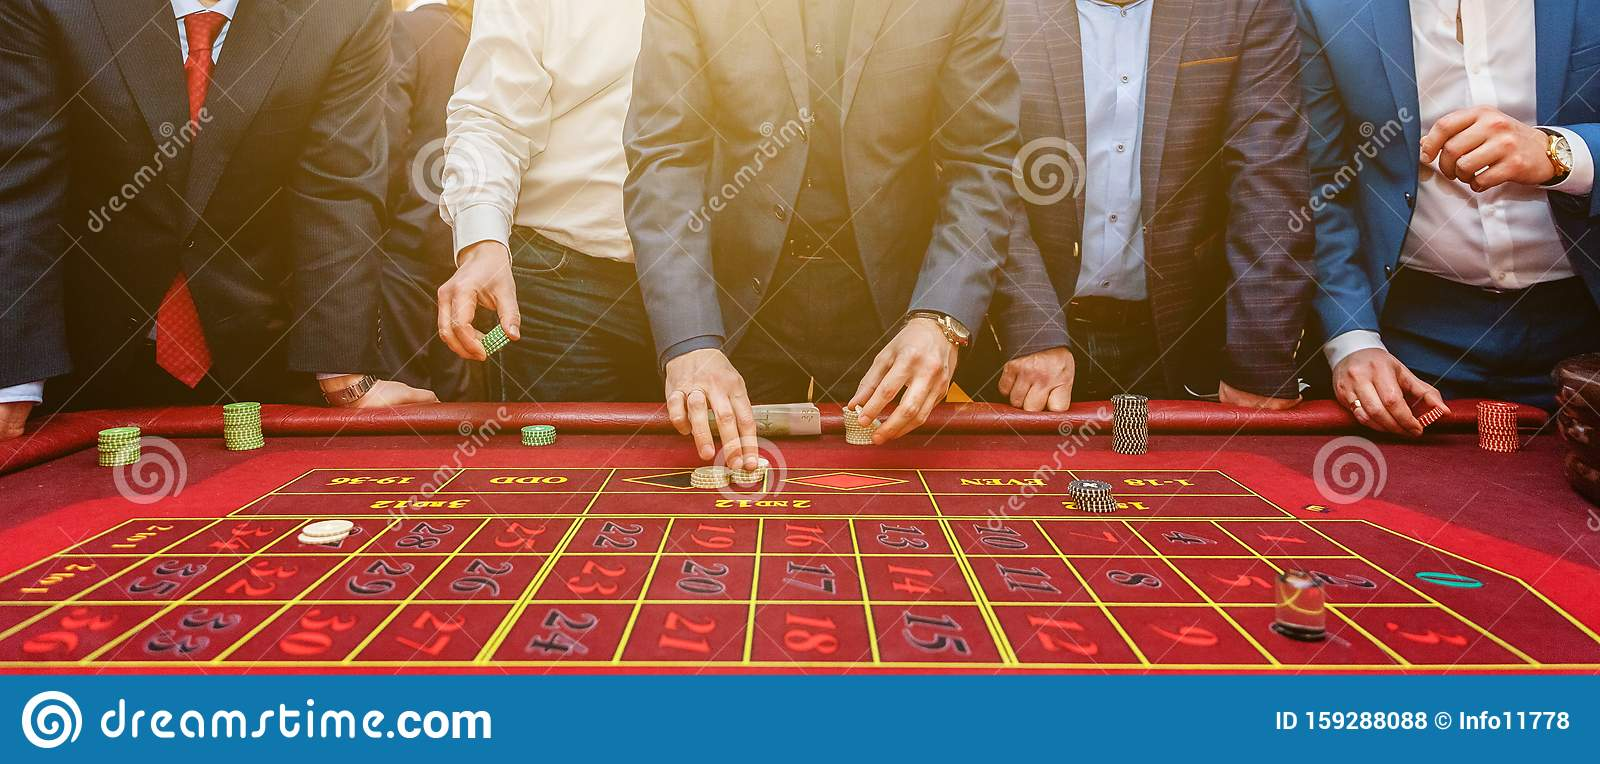 Group Of People Behind Roulette Gambling Table In Luxury Casino